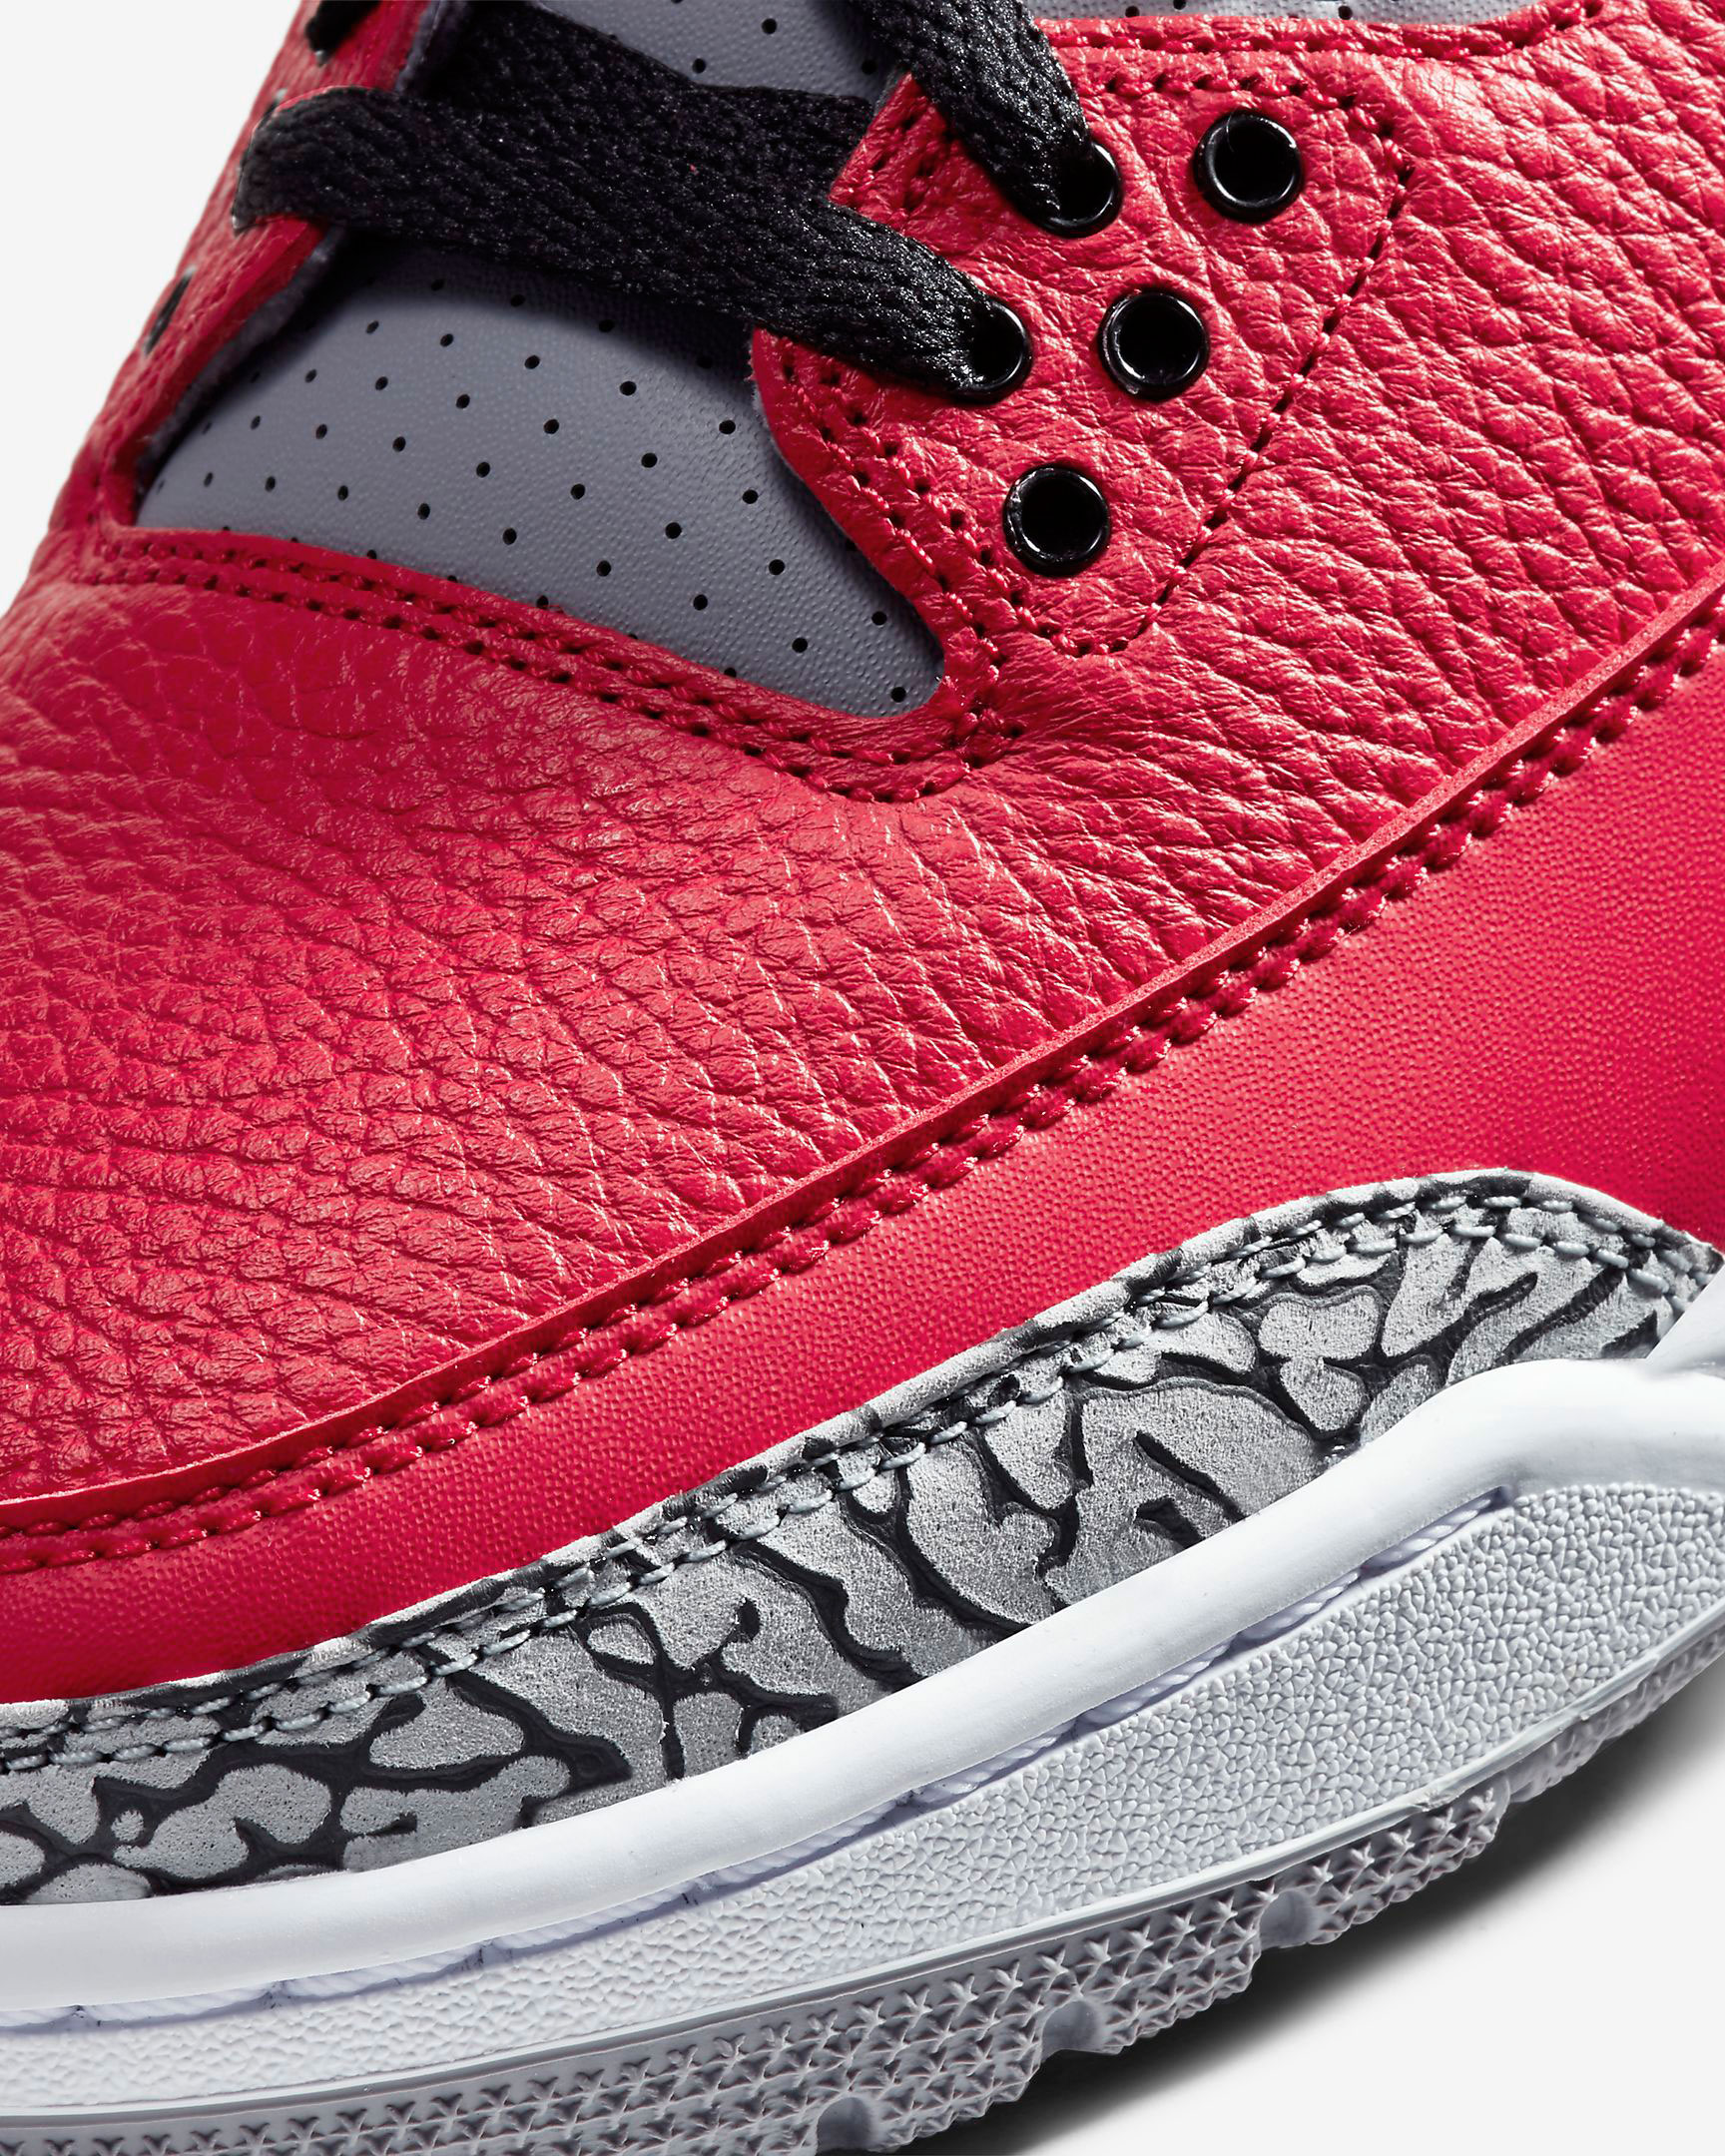 air-jordan-3-red-cement-release-date-7